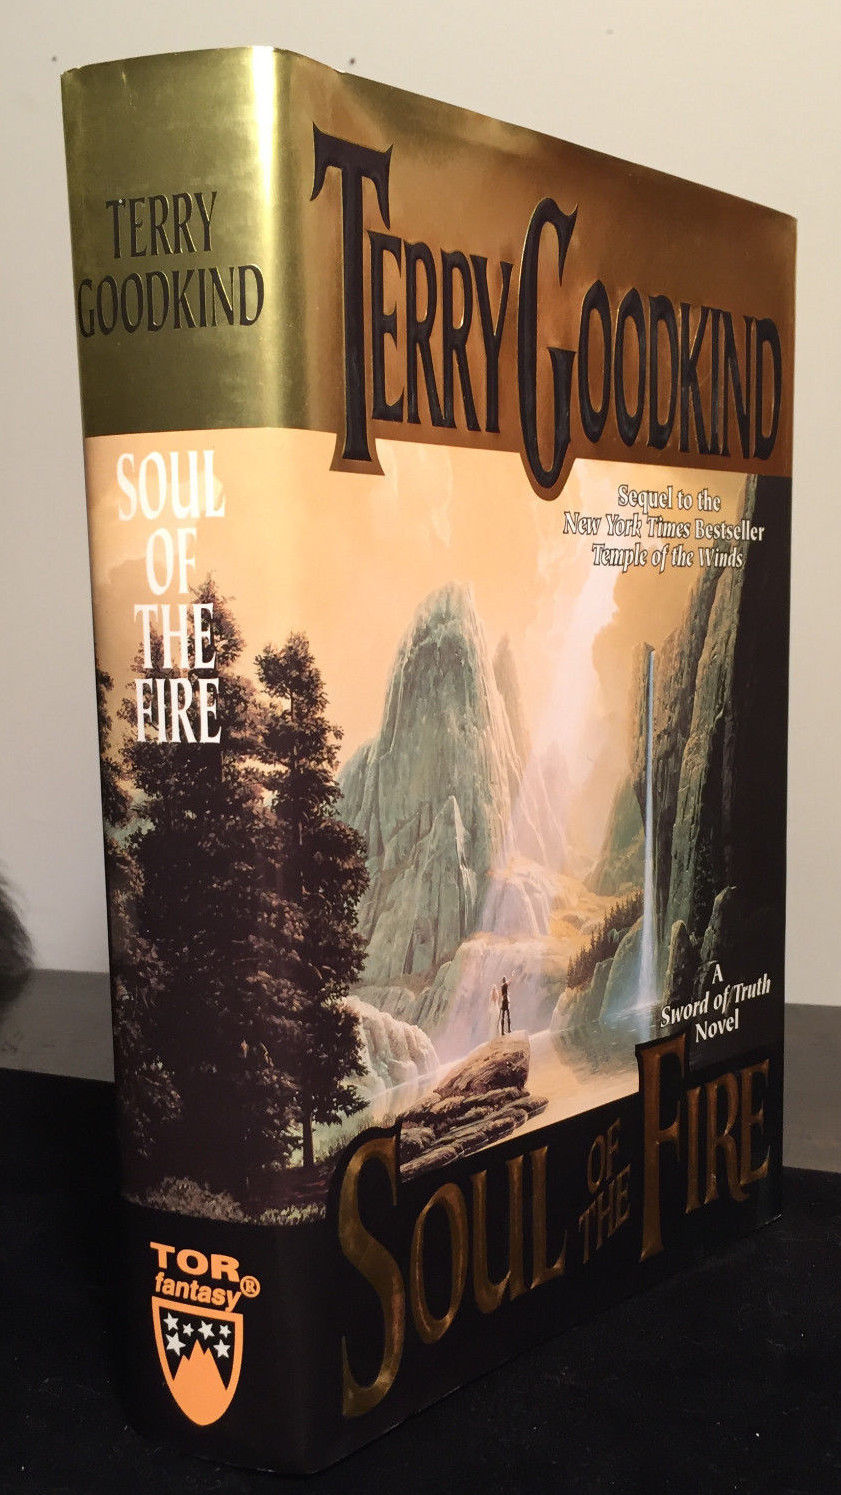 SOUL OF THE FIRE, Terry Goodkind 1st/1st 1999 HC/DJ Excellent Condition, SIGNED